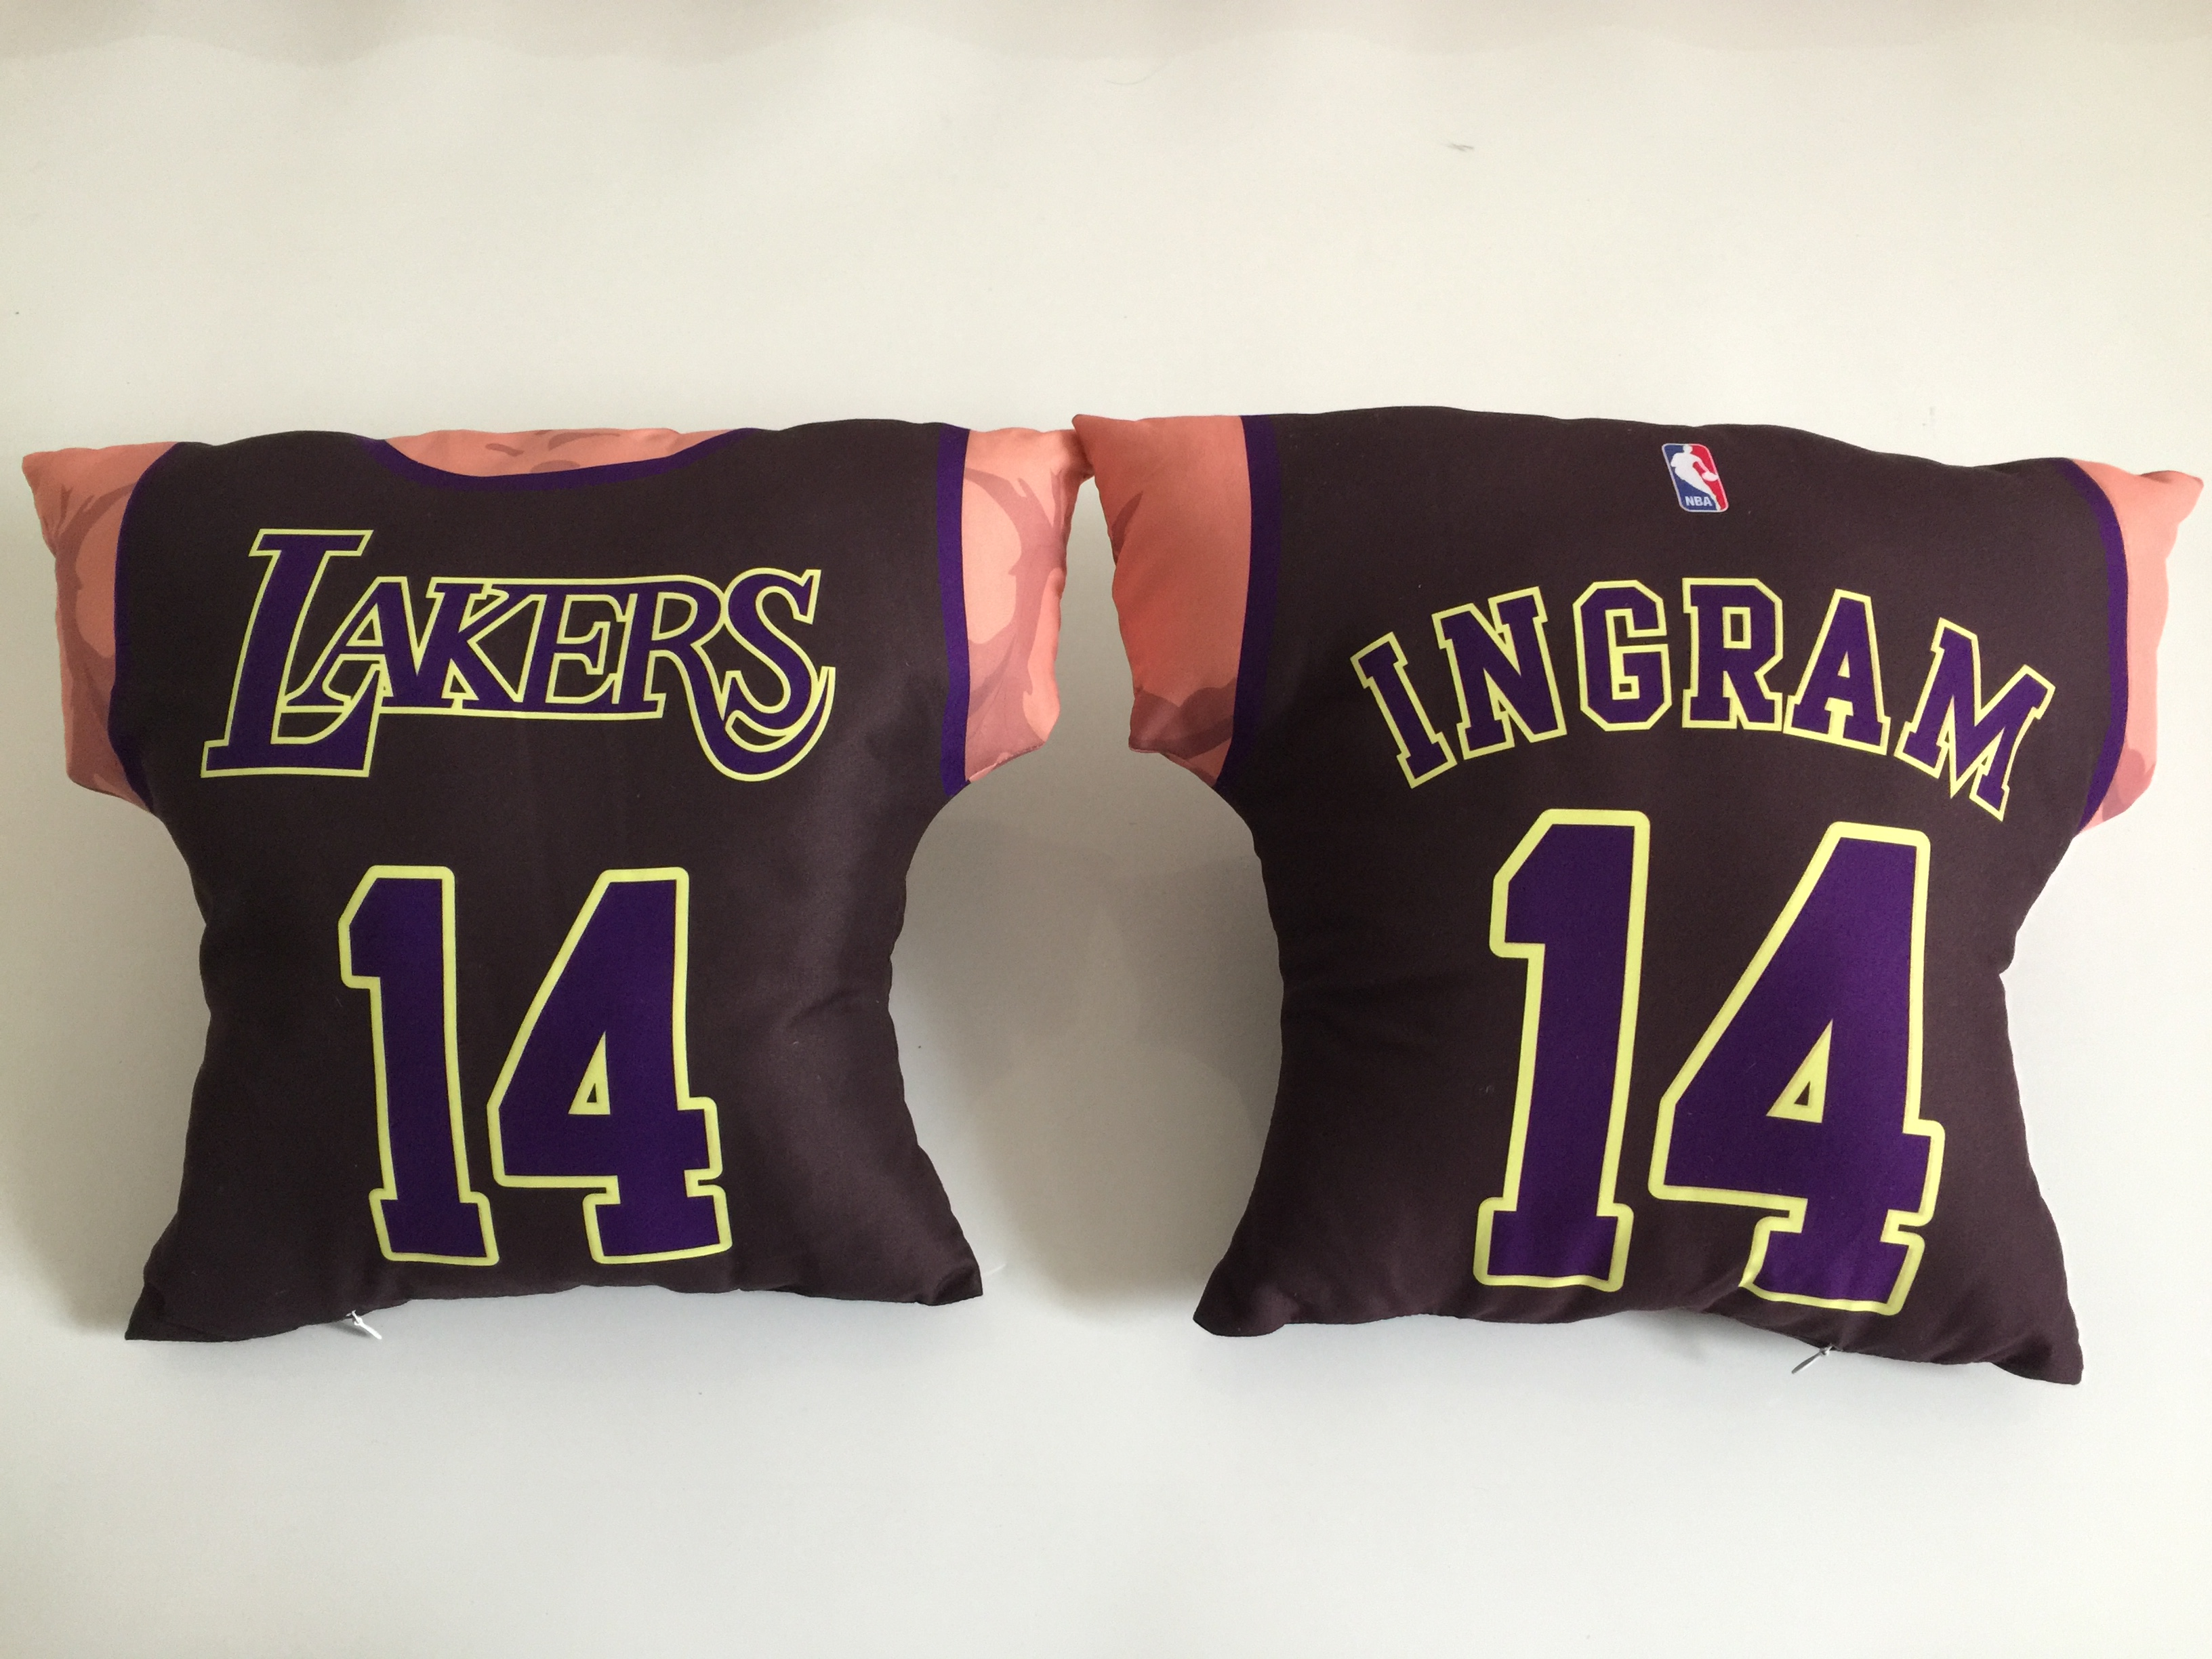 Los Angeles Lakers 14 Brandon Ingram Black NBA Pillow